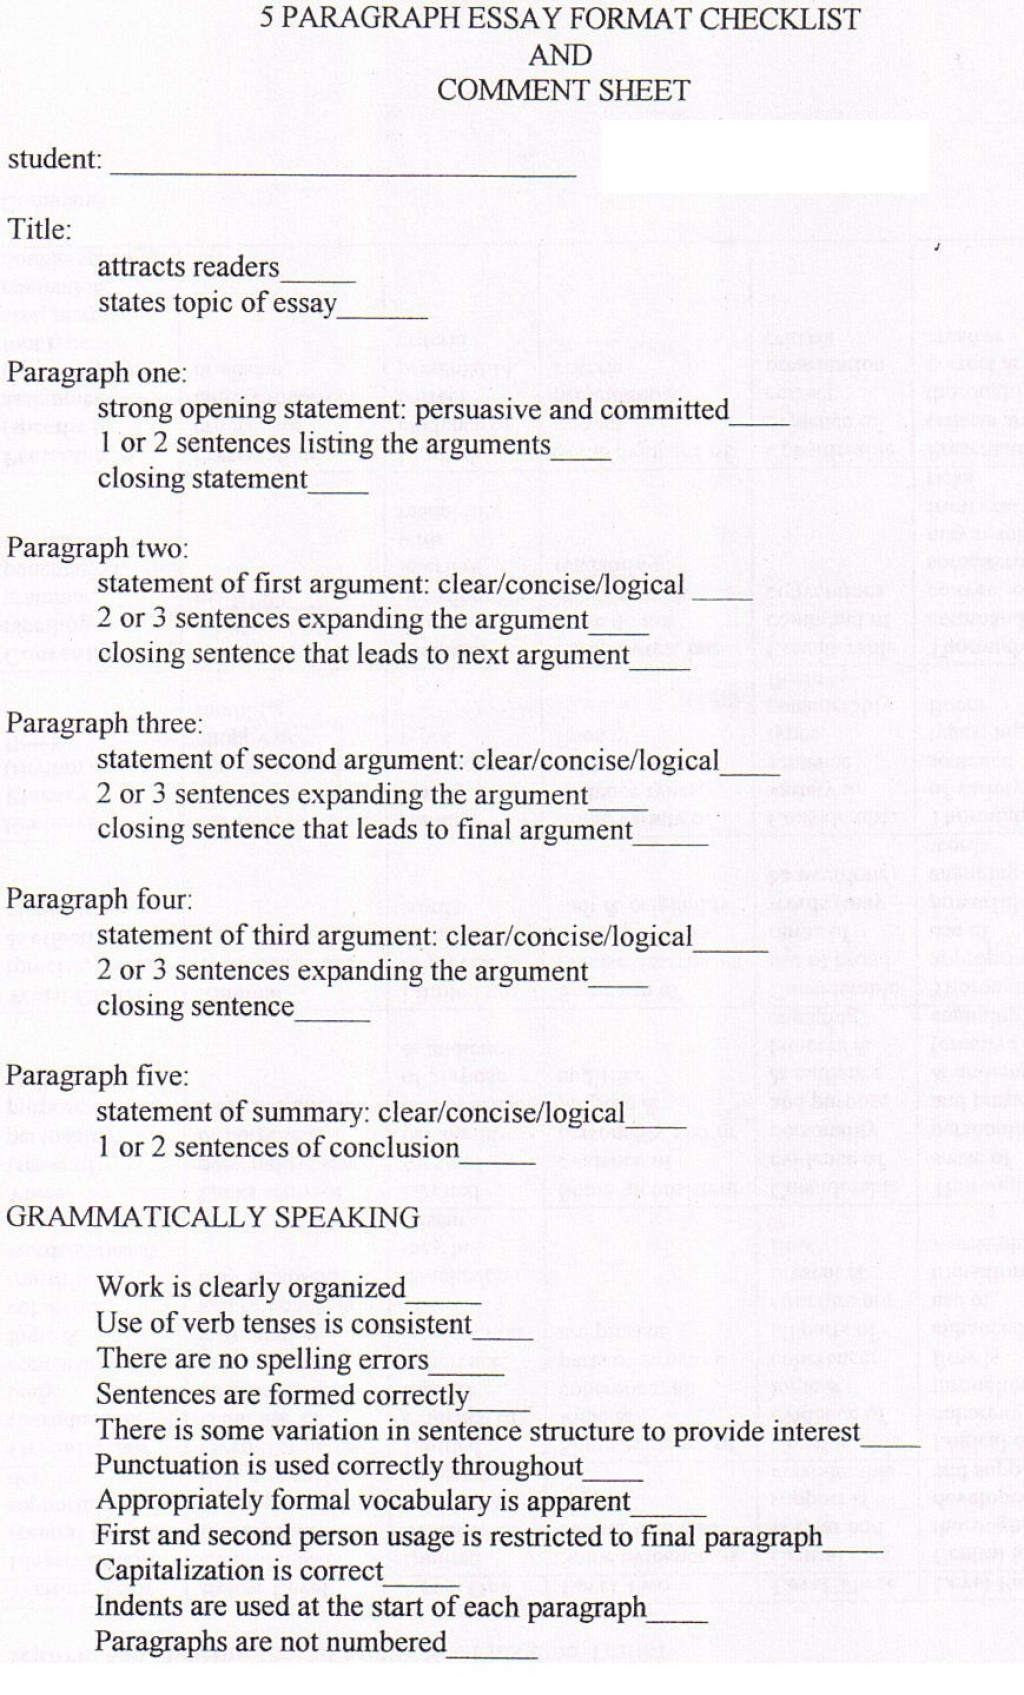 009 5paragraphchecklist Essay On Bullying Amazing The Cause And Effect In School Of Cyberbullying Large